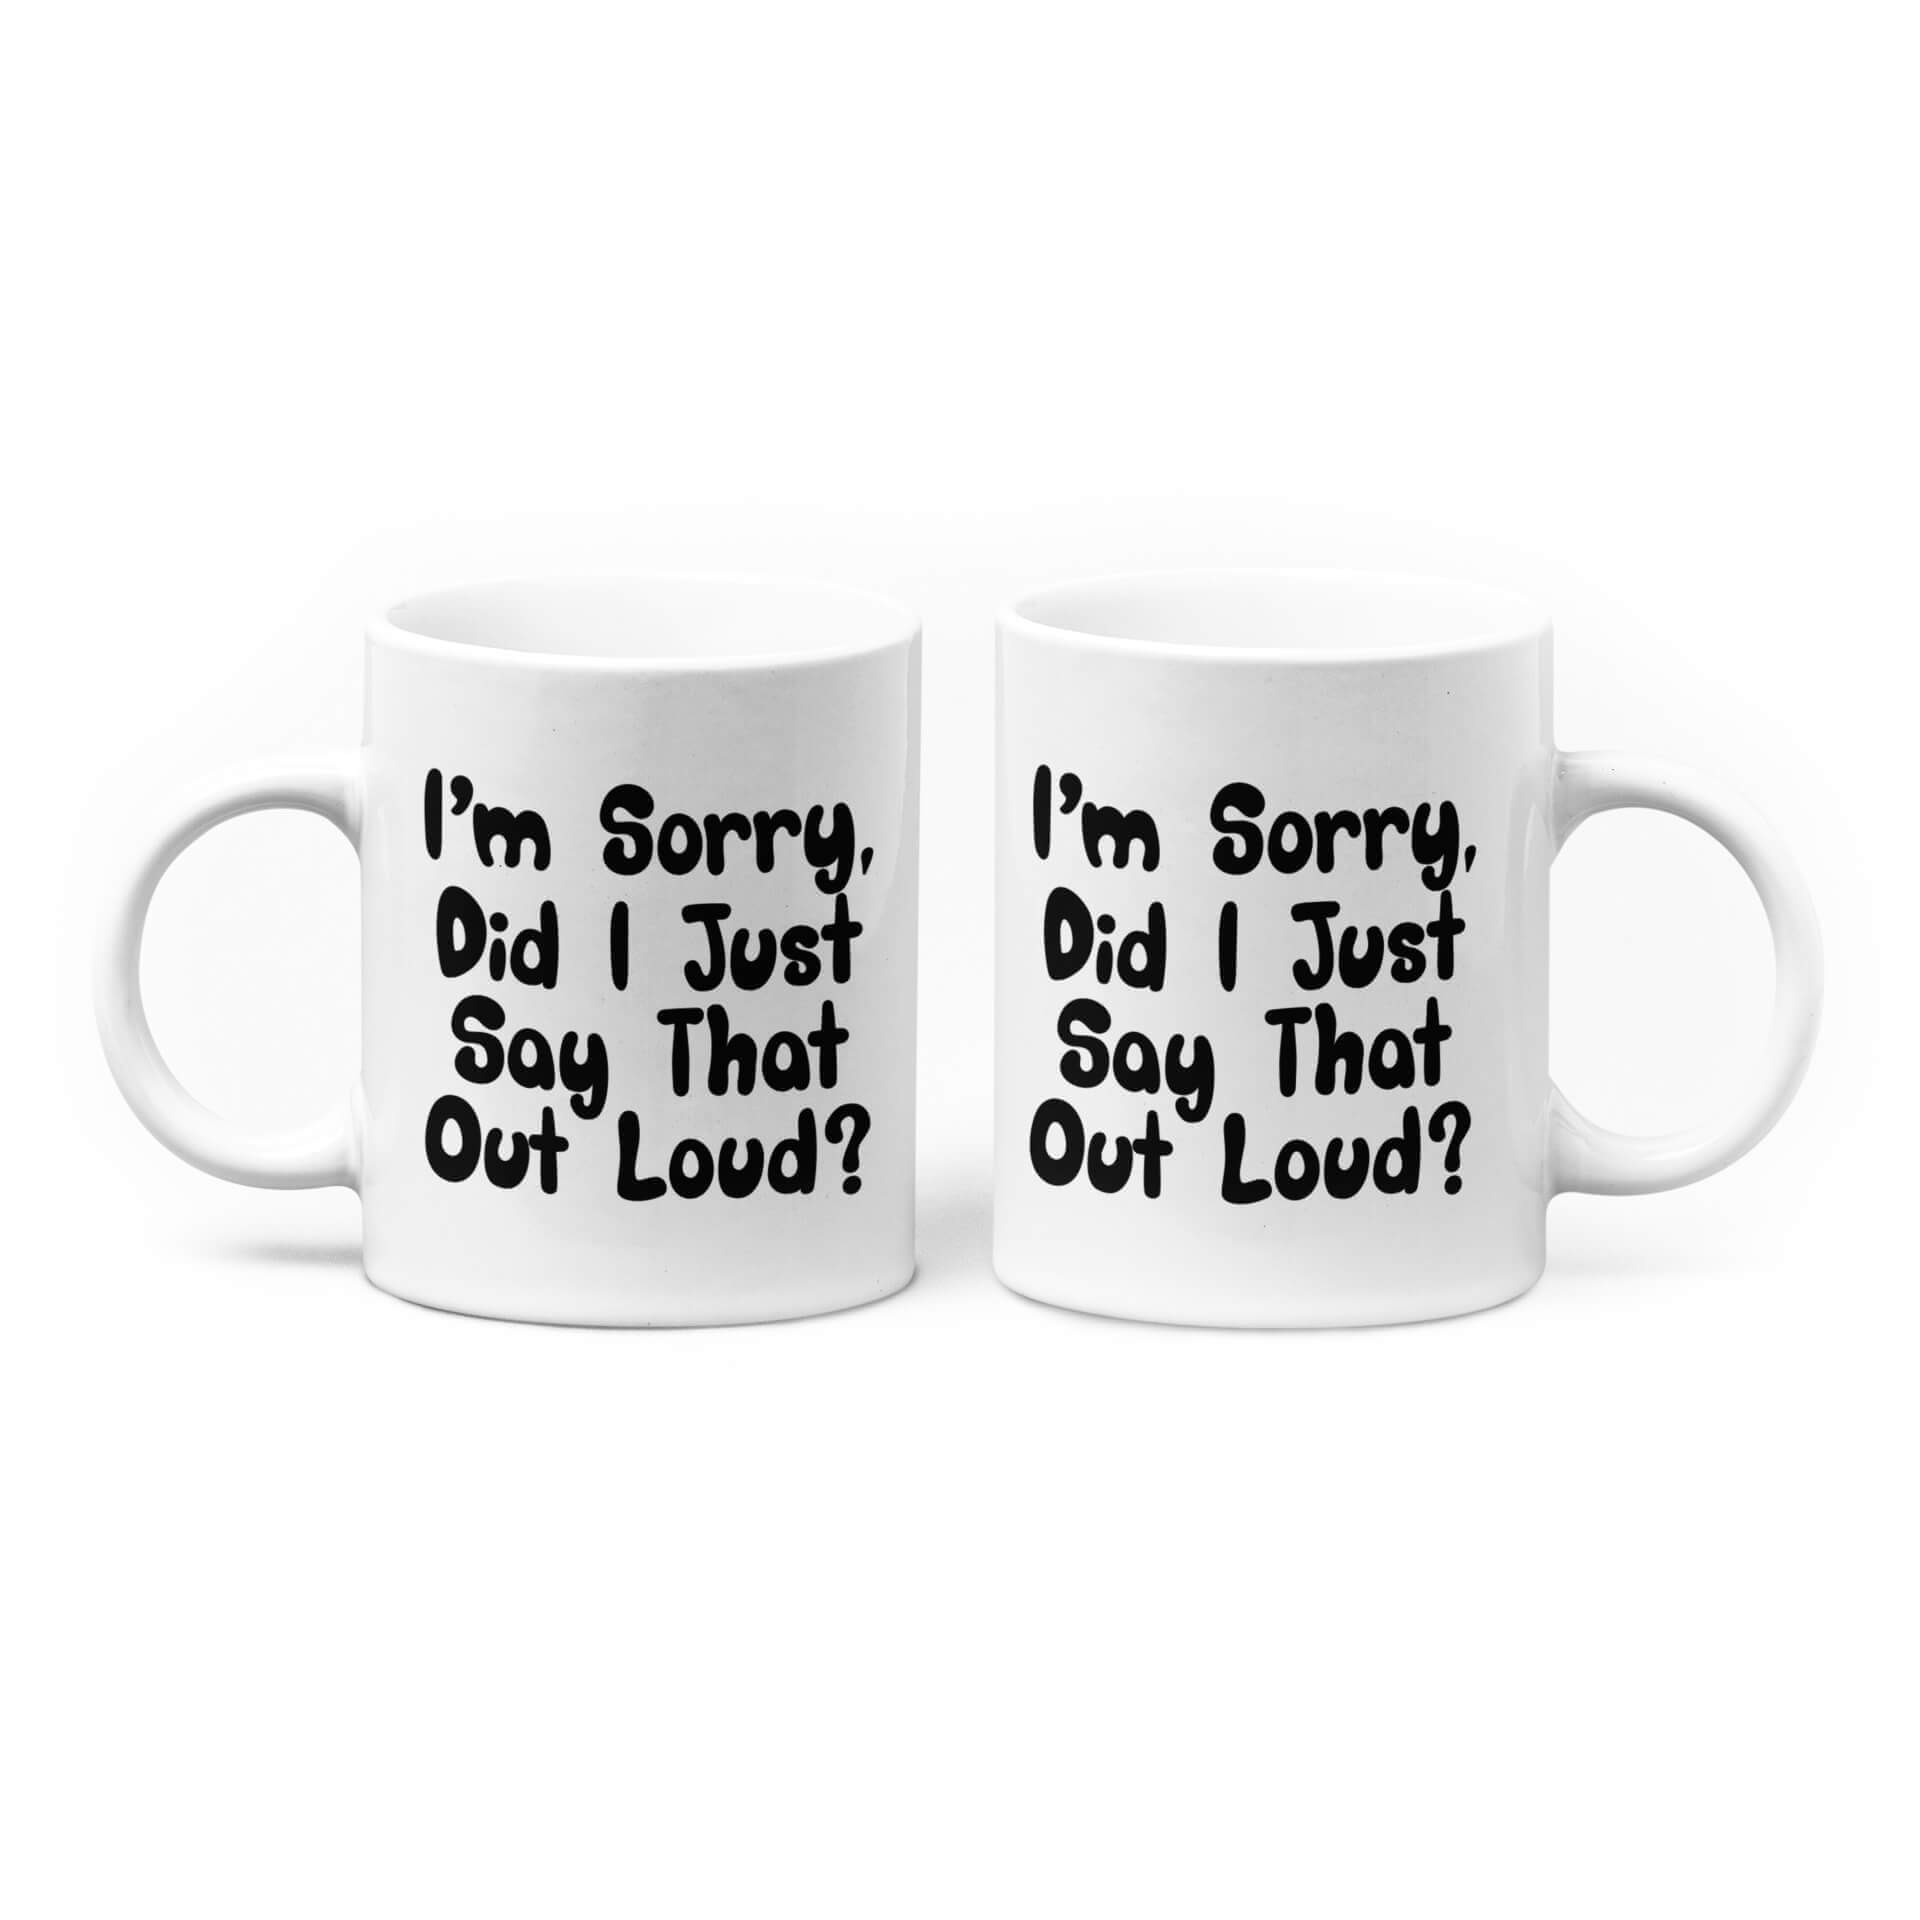 I'm Sorry, Did I Just Say That Out Loud Mug